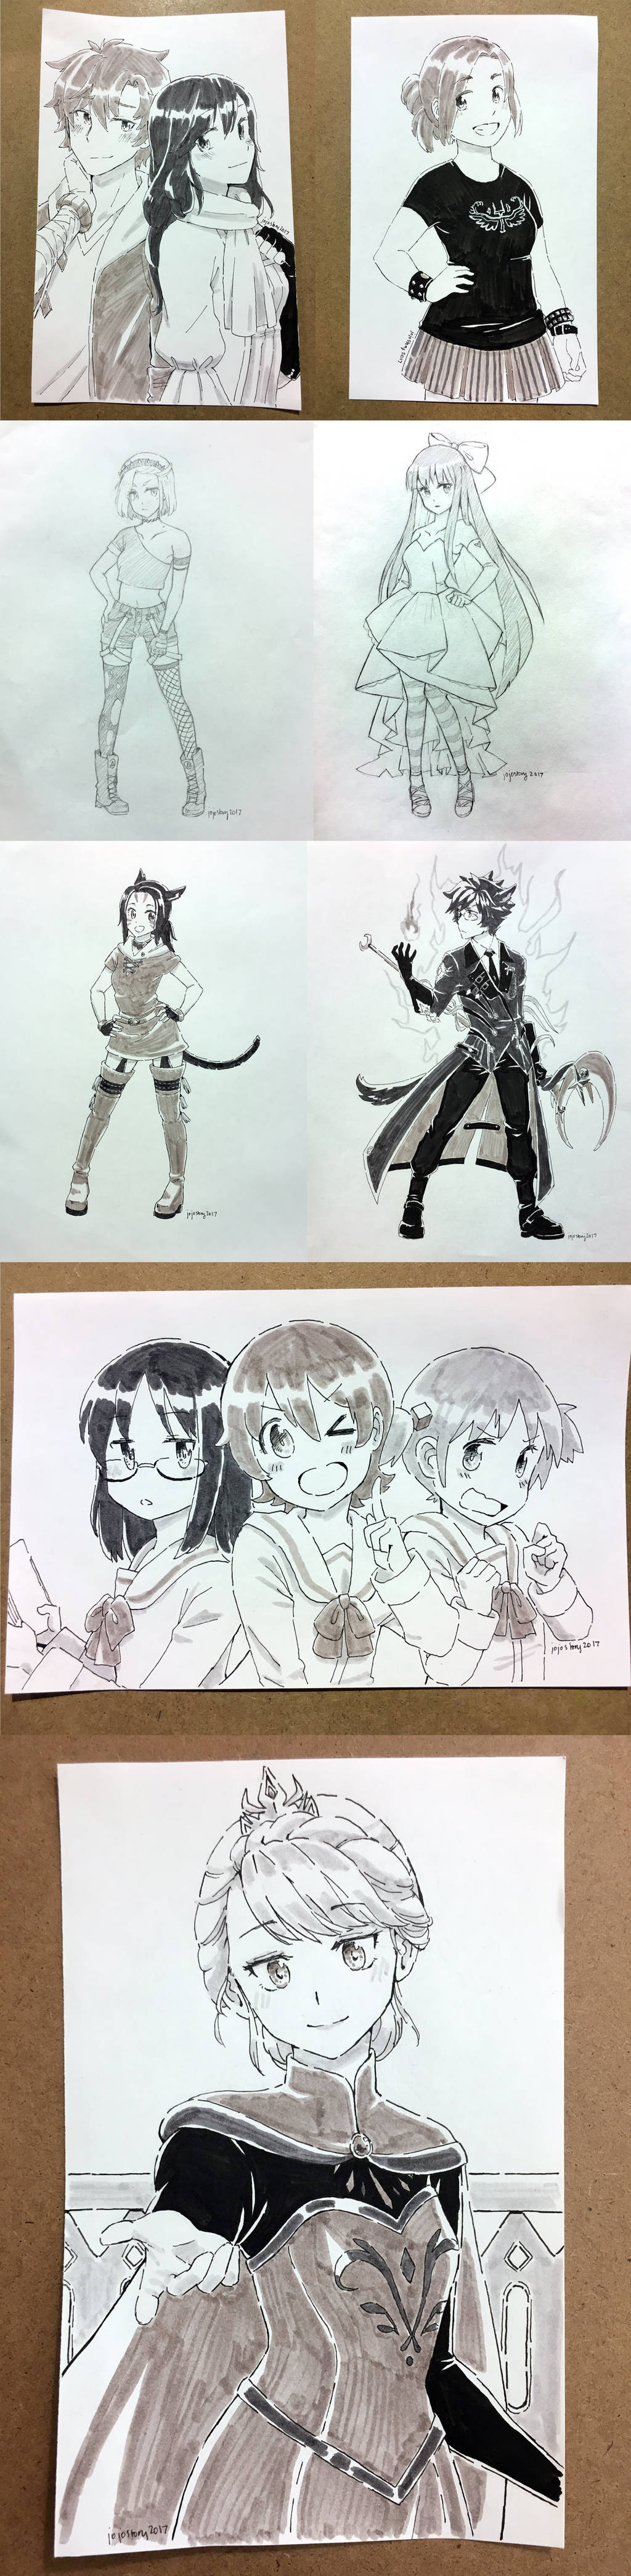 Anime Central 2017 Commissions by jojostory